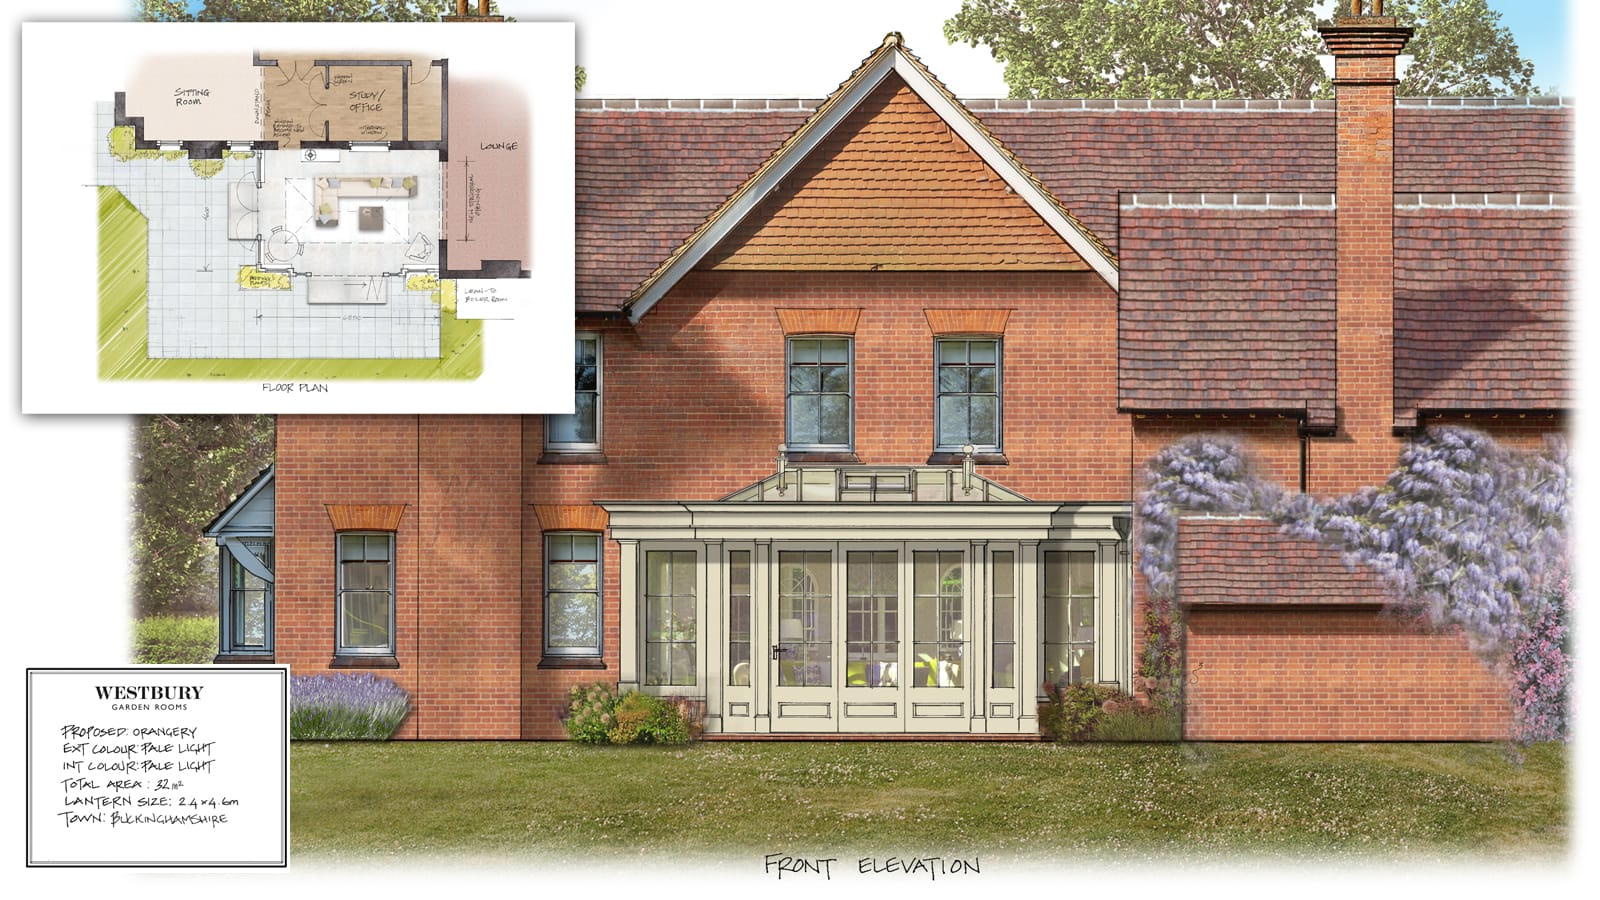 Drawing of the Westbury timber orangery extension